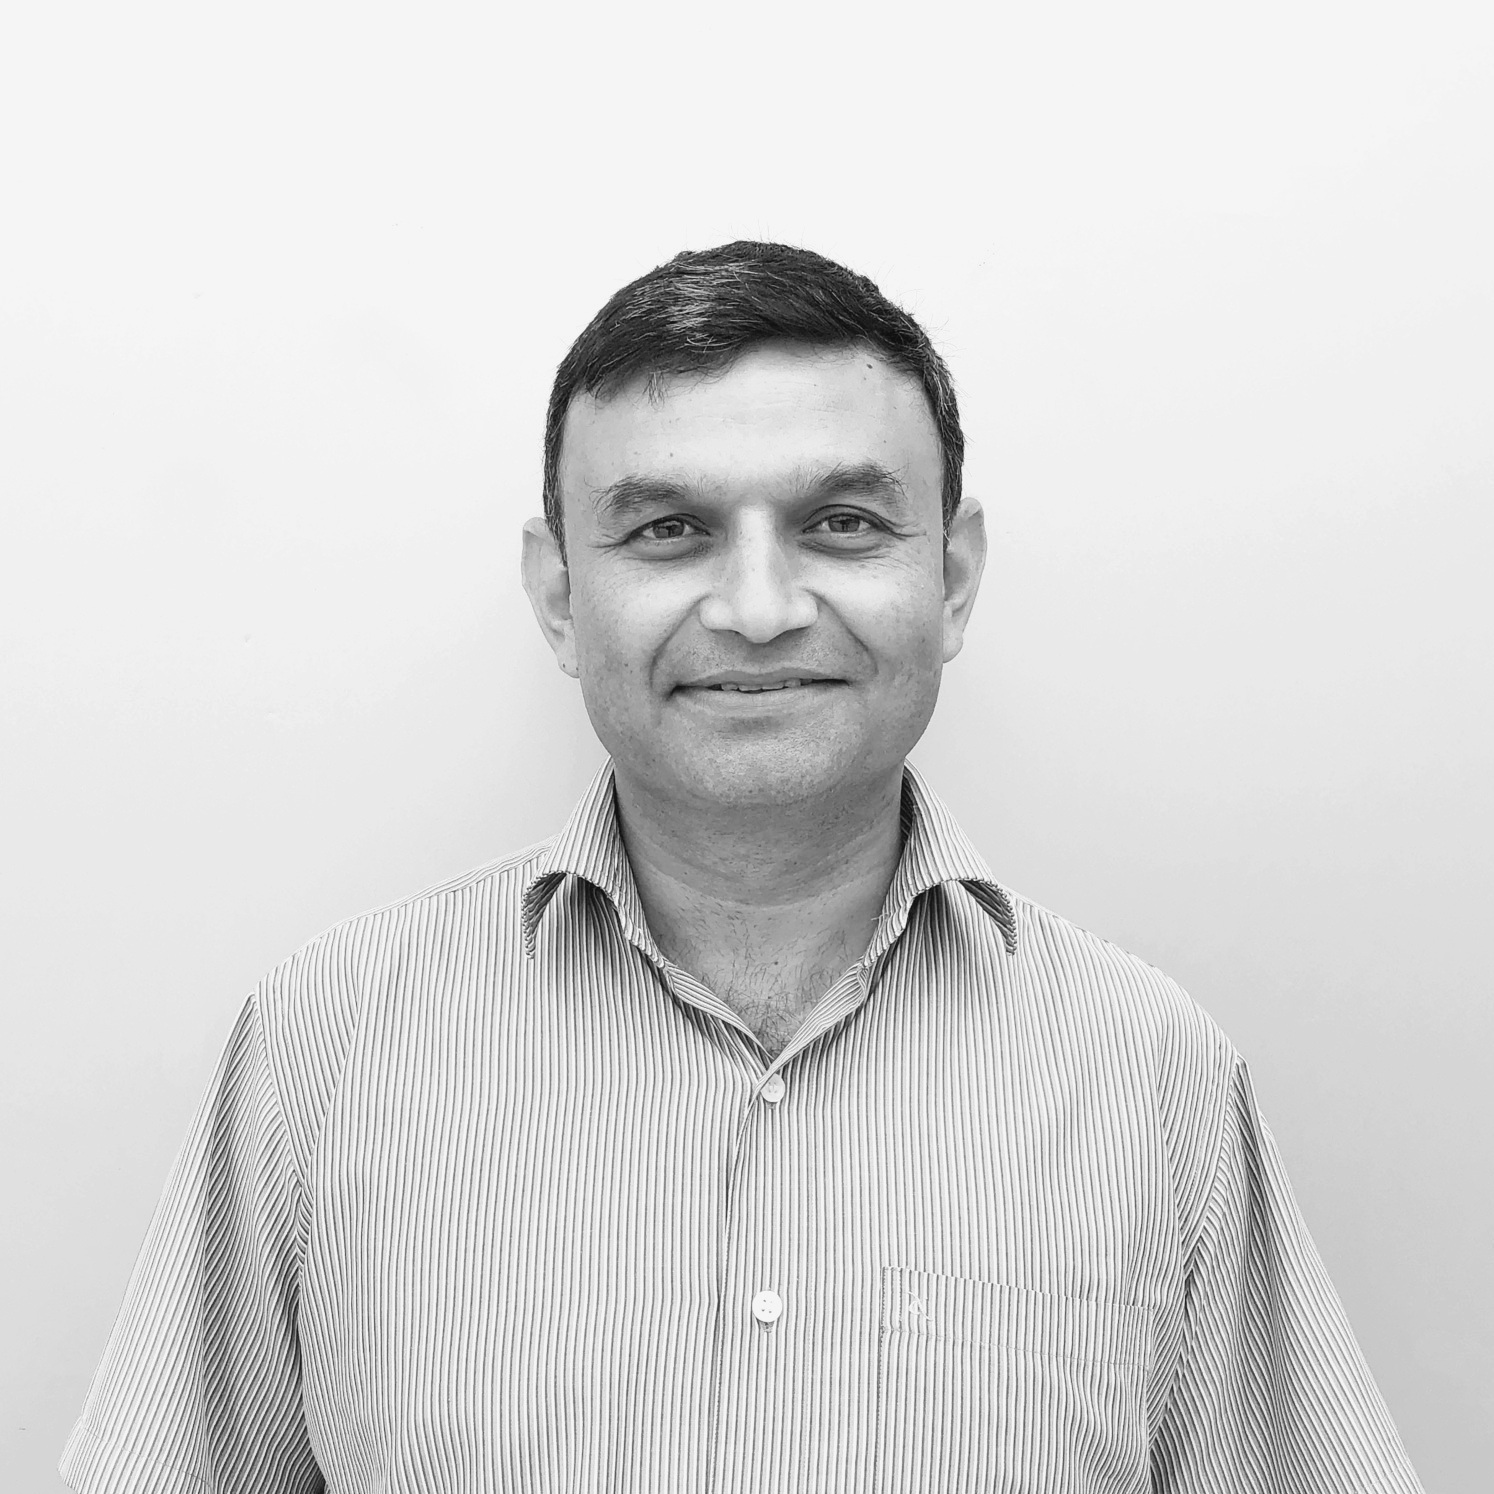 Navneet bhandari - Helicopter pilot with 20+ yrs experience at leading teams, training the trainers and managing training plans. Actively pursuing experiential design thinking. A skydiver, mountaineer & scuba diver currently engaged in cycling and squash.LinkedInTwitter